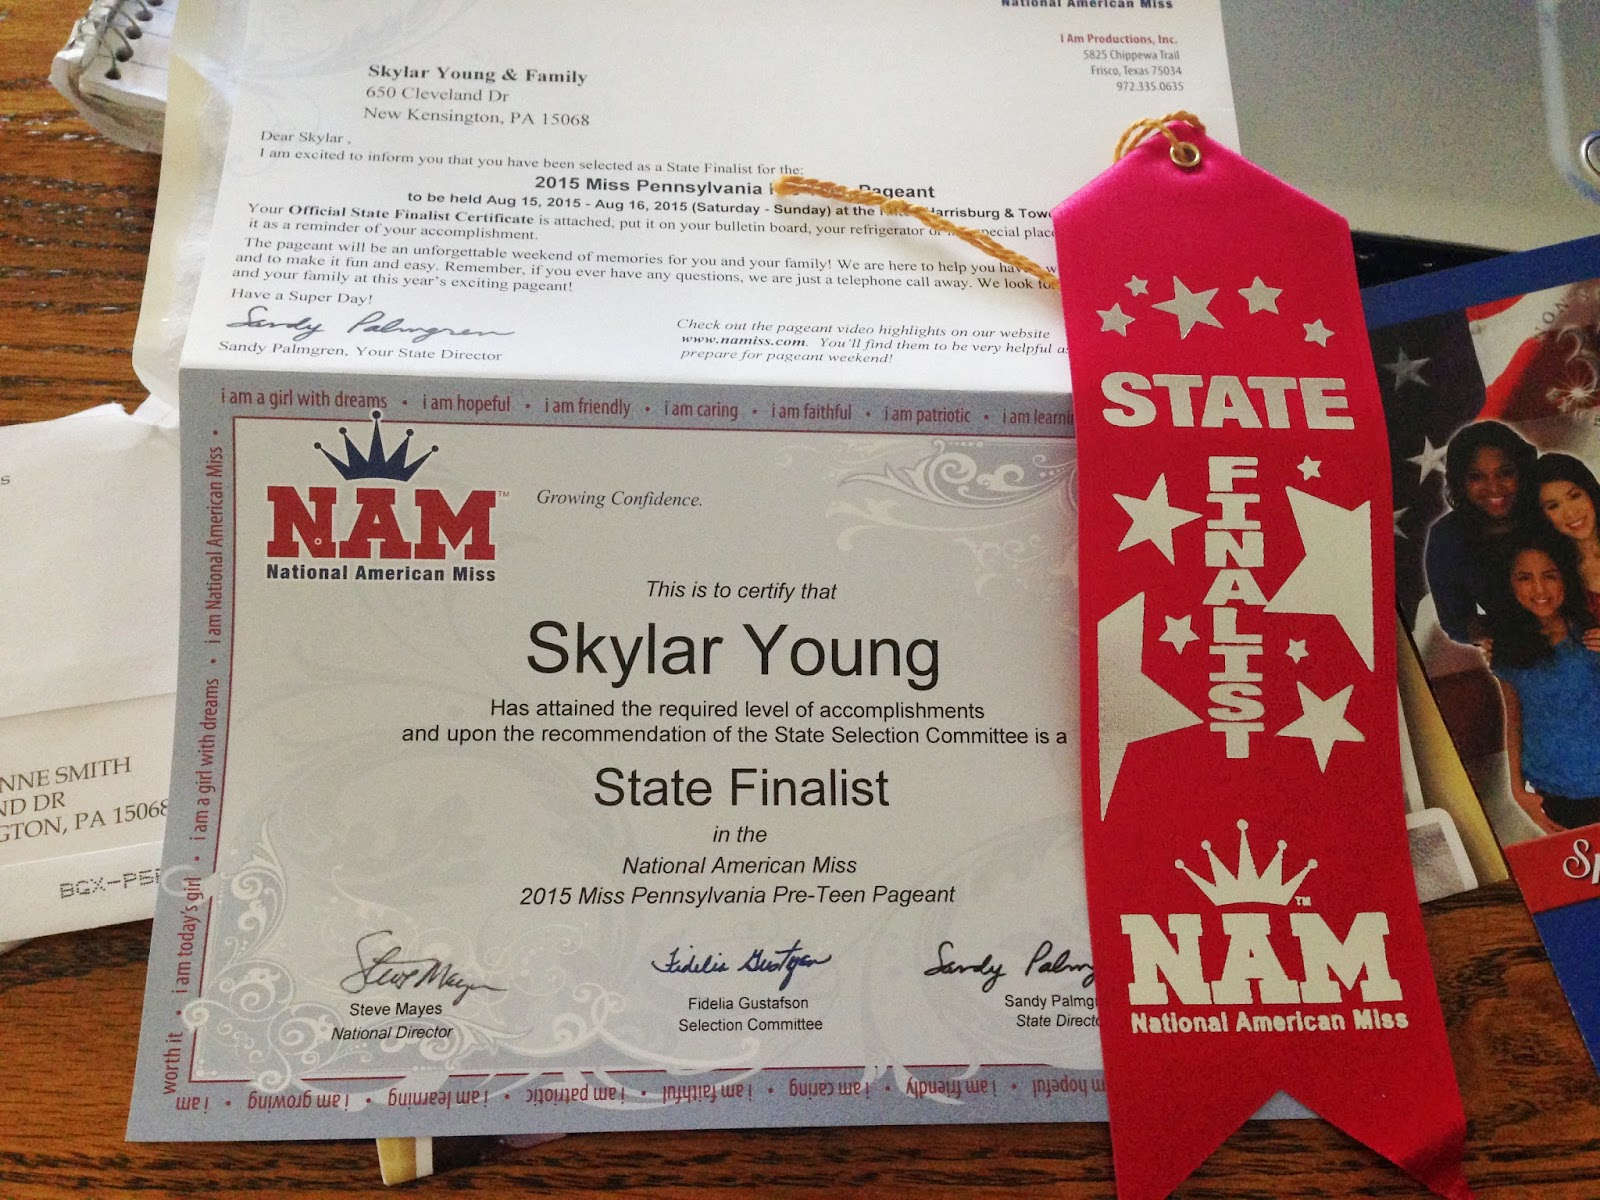 ... Skylar Young's Stars are the Limitz -National American Miss Pre-teen